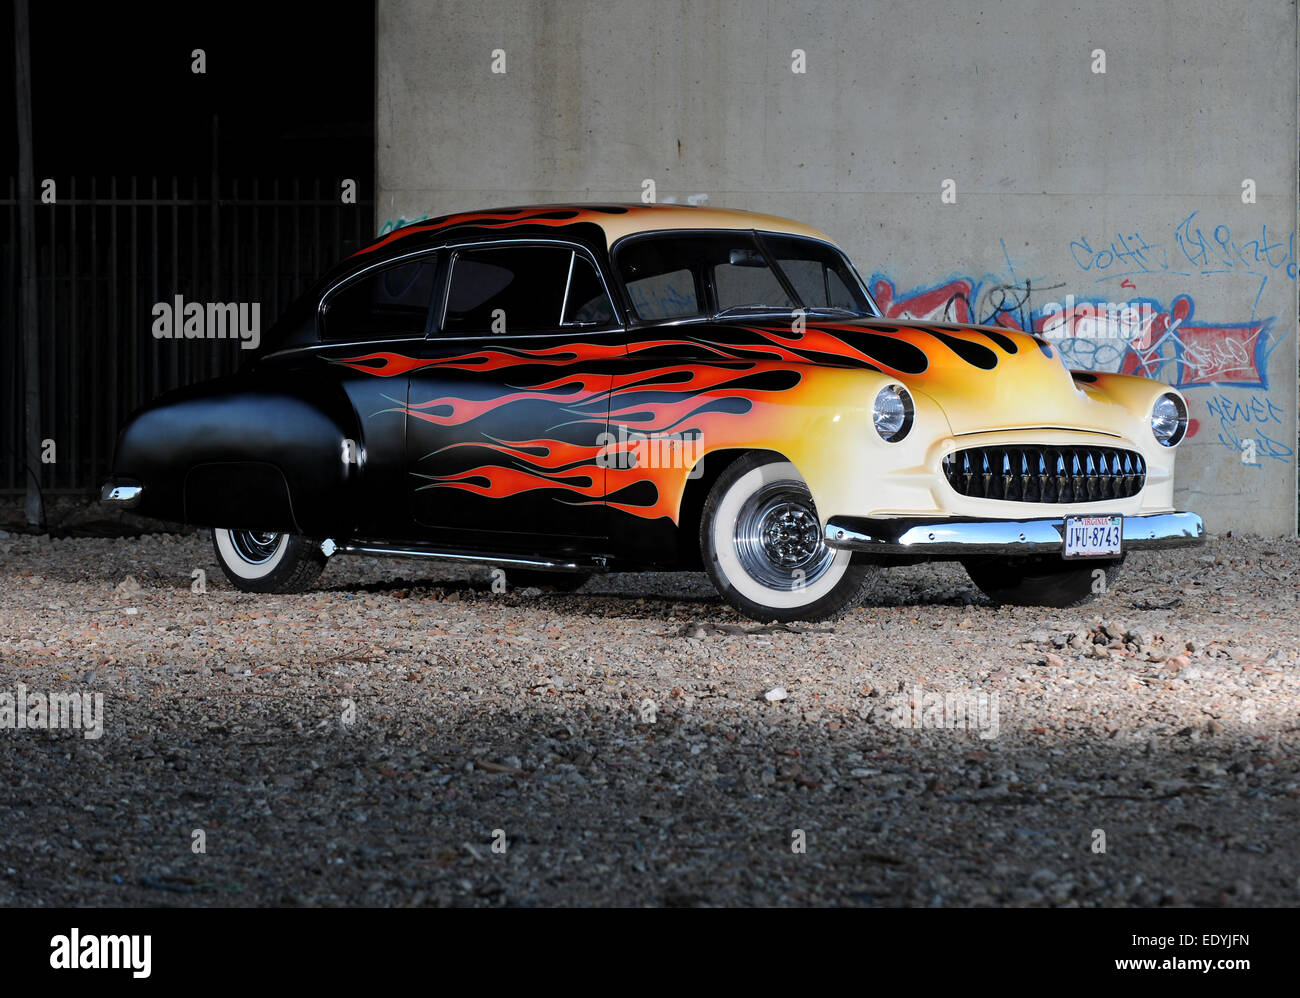 1949 Chevrolet Stock Photos Images Alamy Chevy Pickup Hot Rod Flame Painted Custom Hotrod Car Image